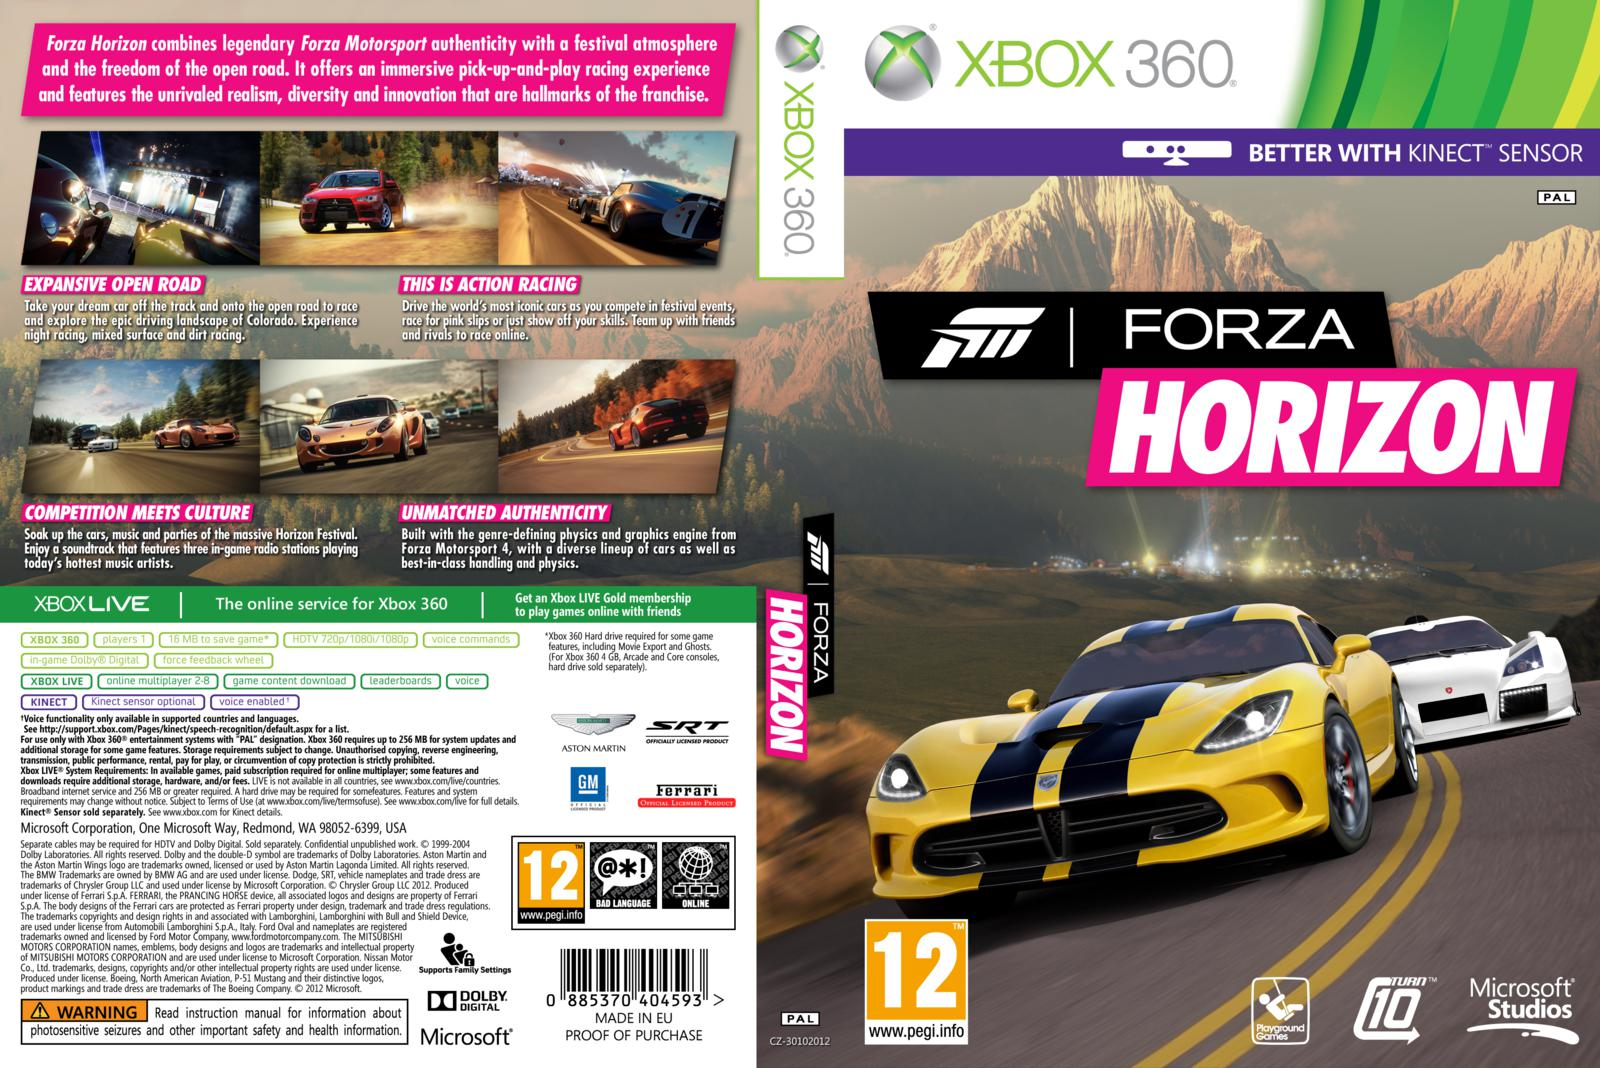 forza horizon xbox 360 gamecover capas customizadas para dvd e bluray. Black Bedroom Furniture Sets. Home Design Ideas